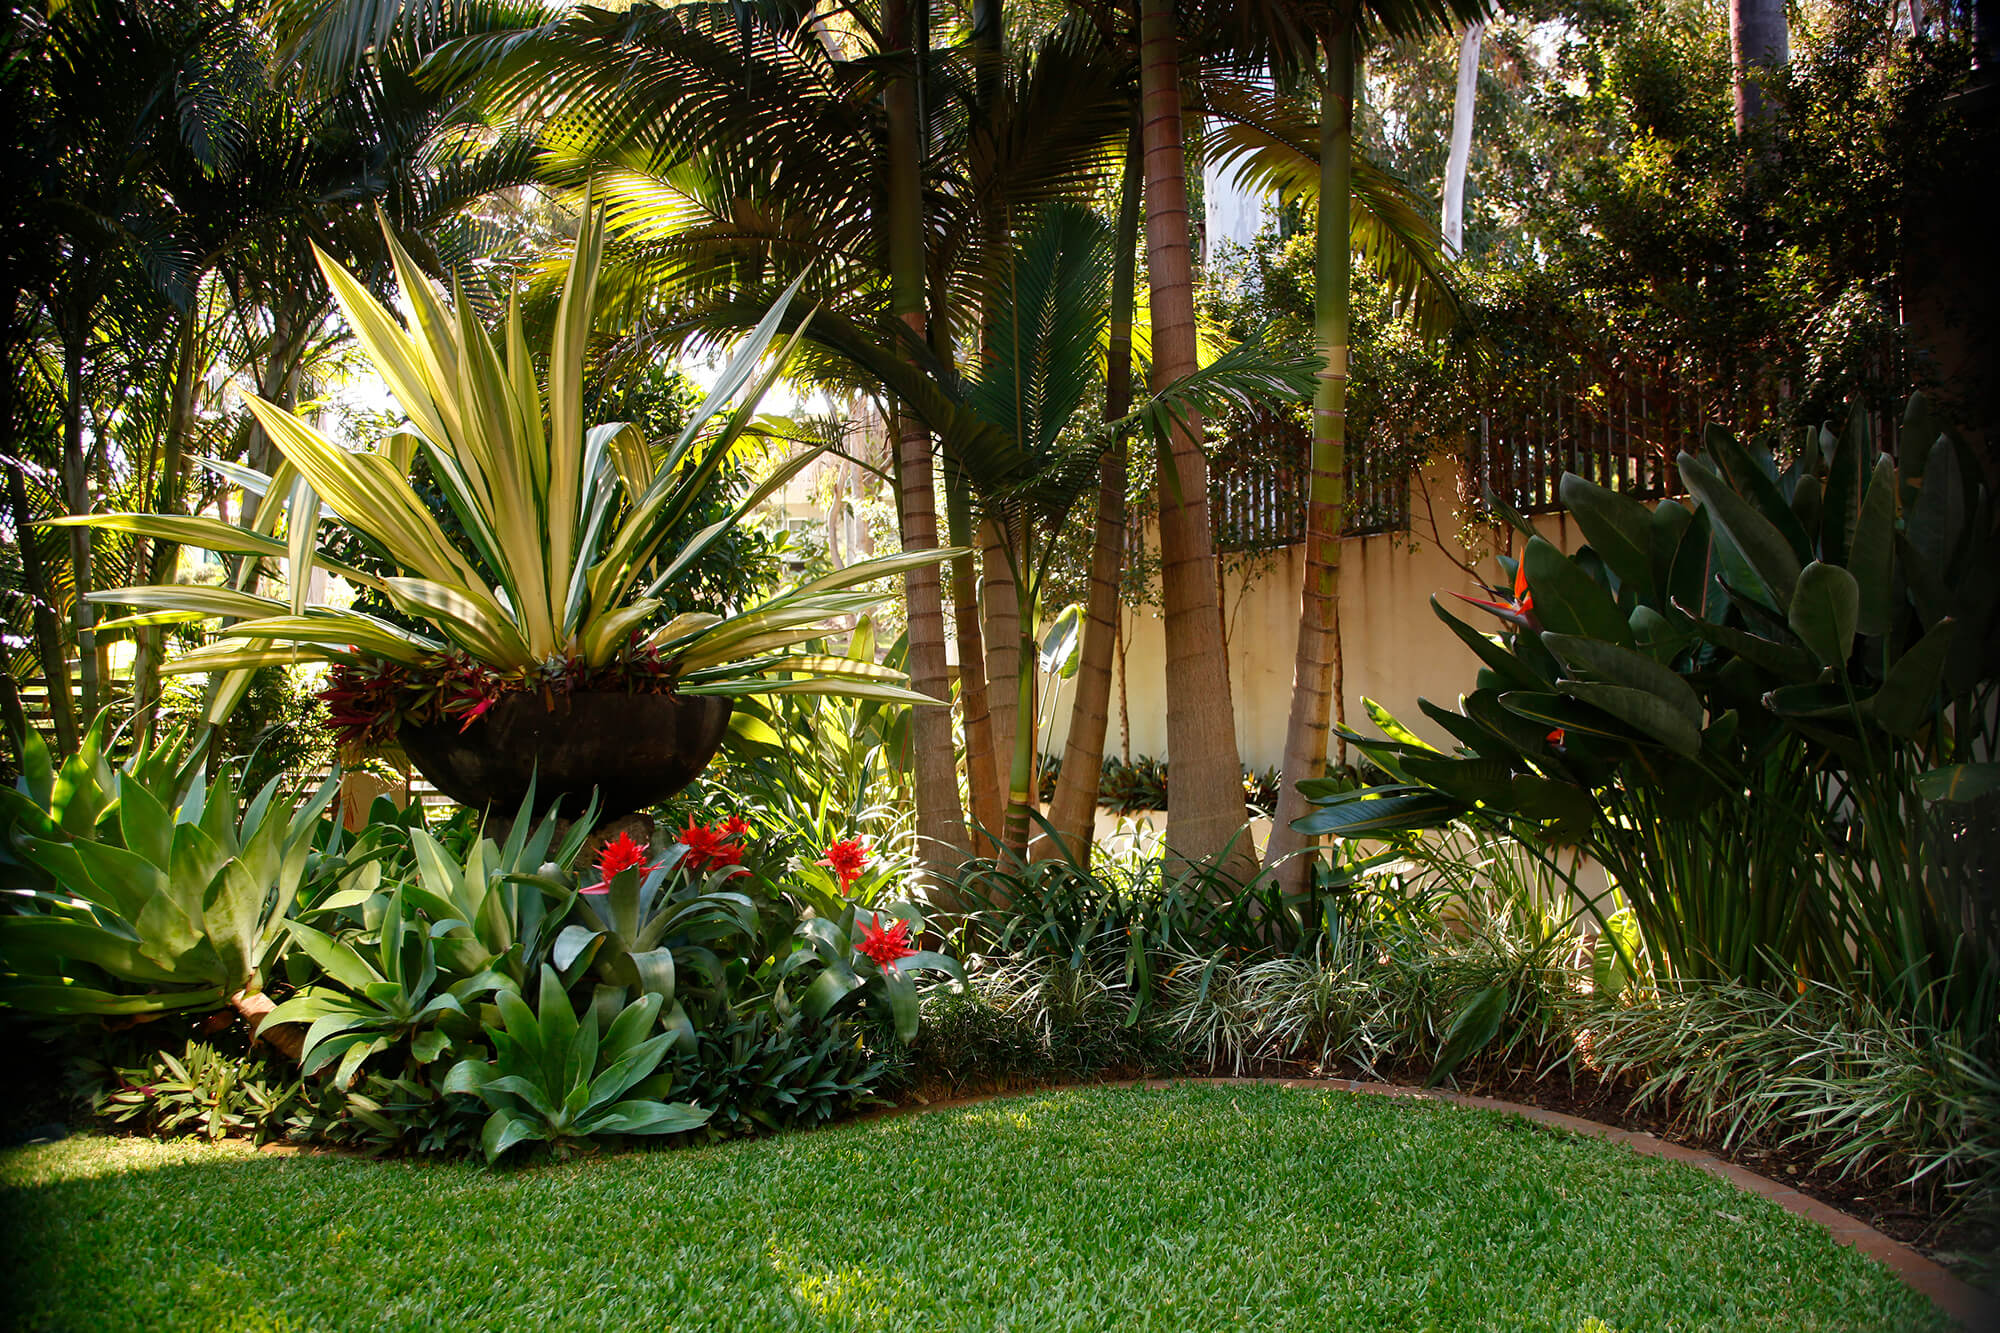 Tropical garden coorparoo boss gardenscapes for Garden design queensland